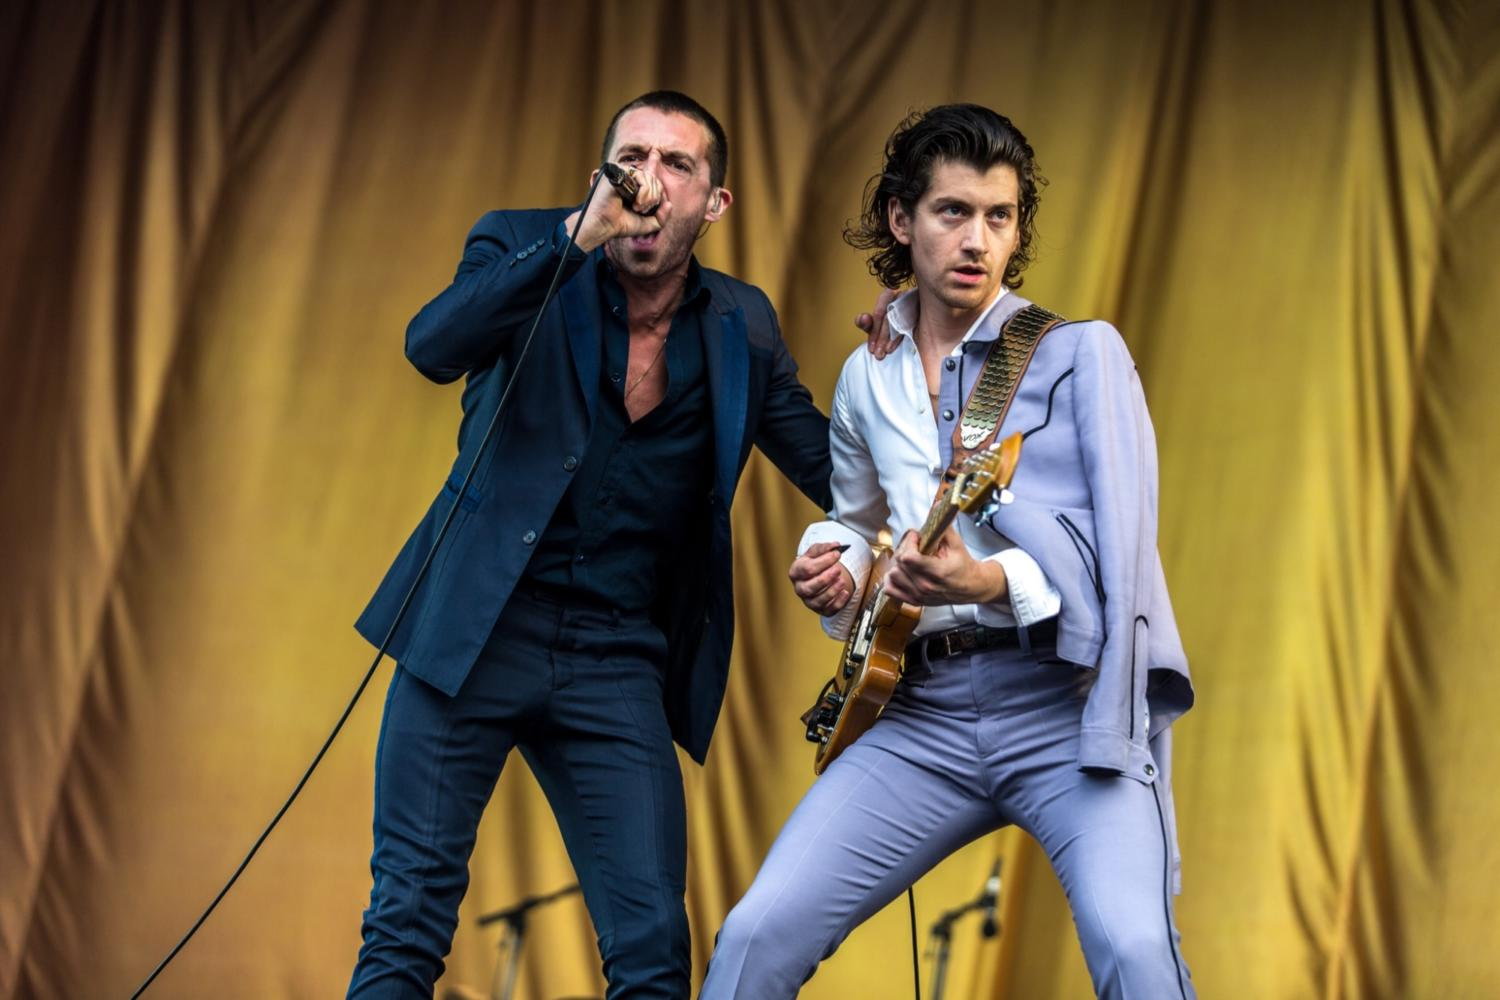 The Last Shadow Puppets make up another song - this one's about LCD Soundsystem